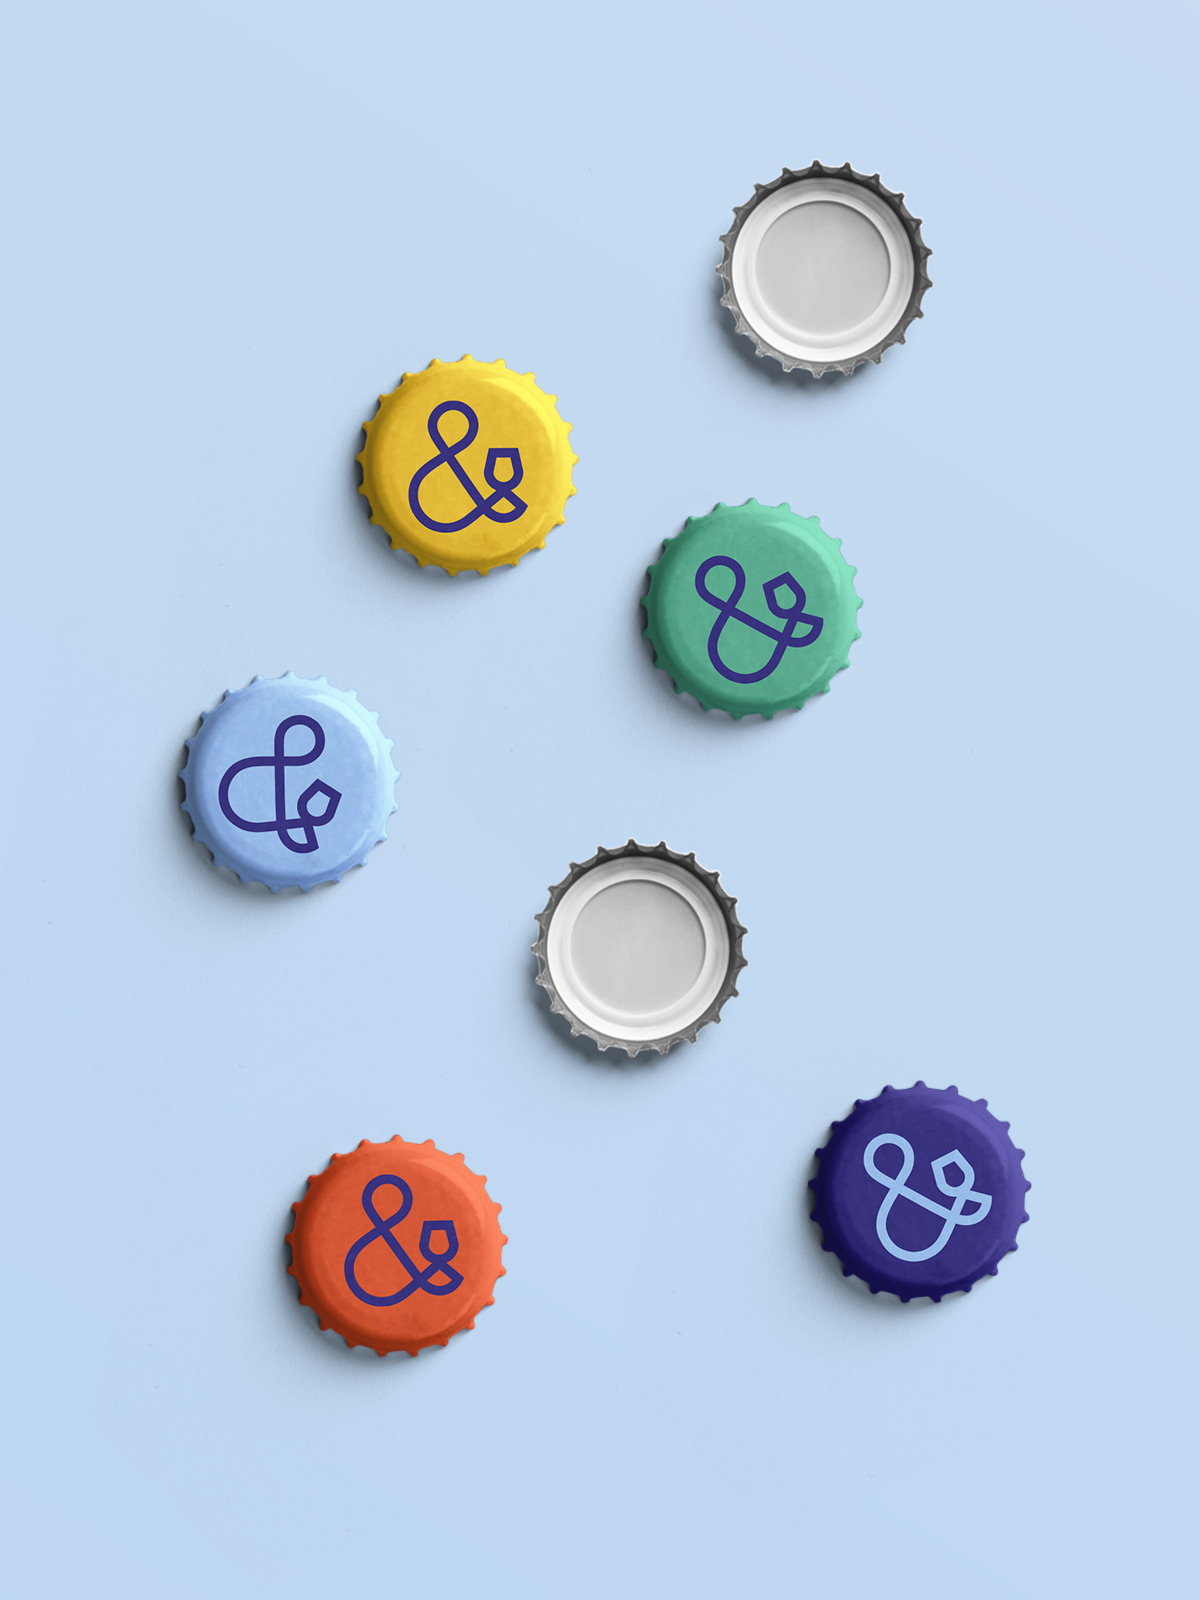 sons-daughters-brewing-company-20